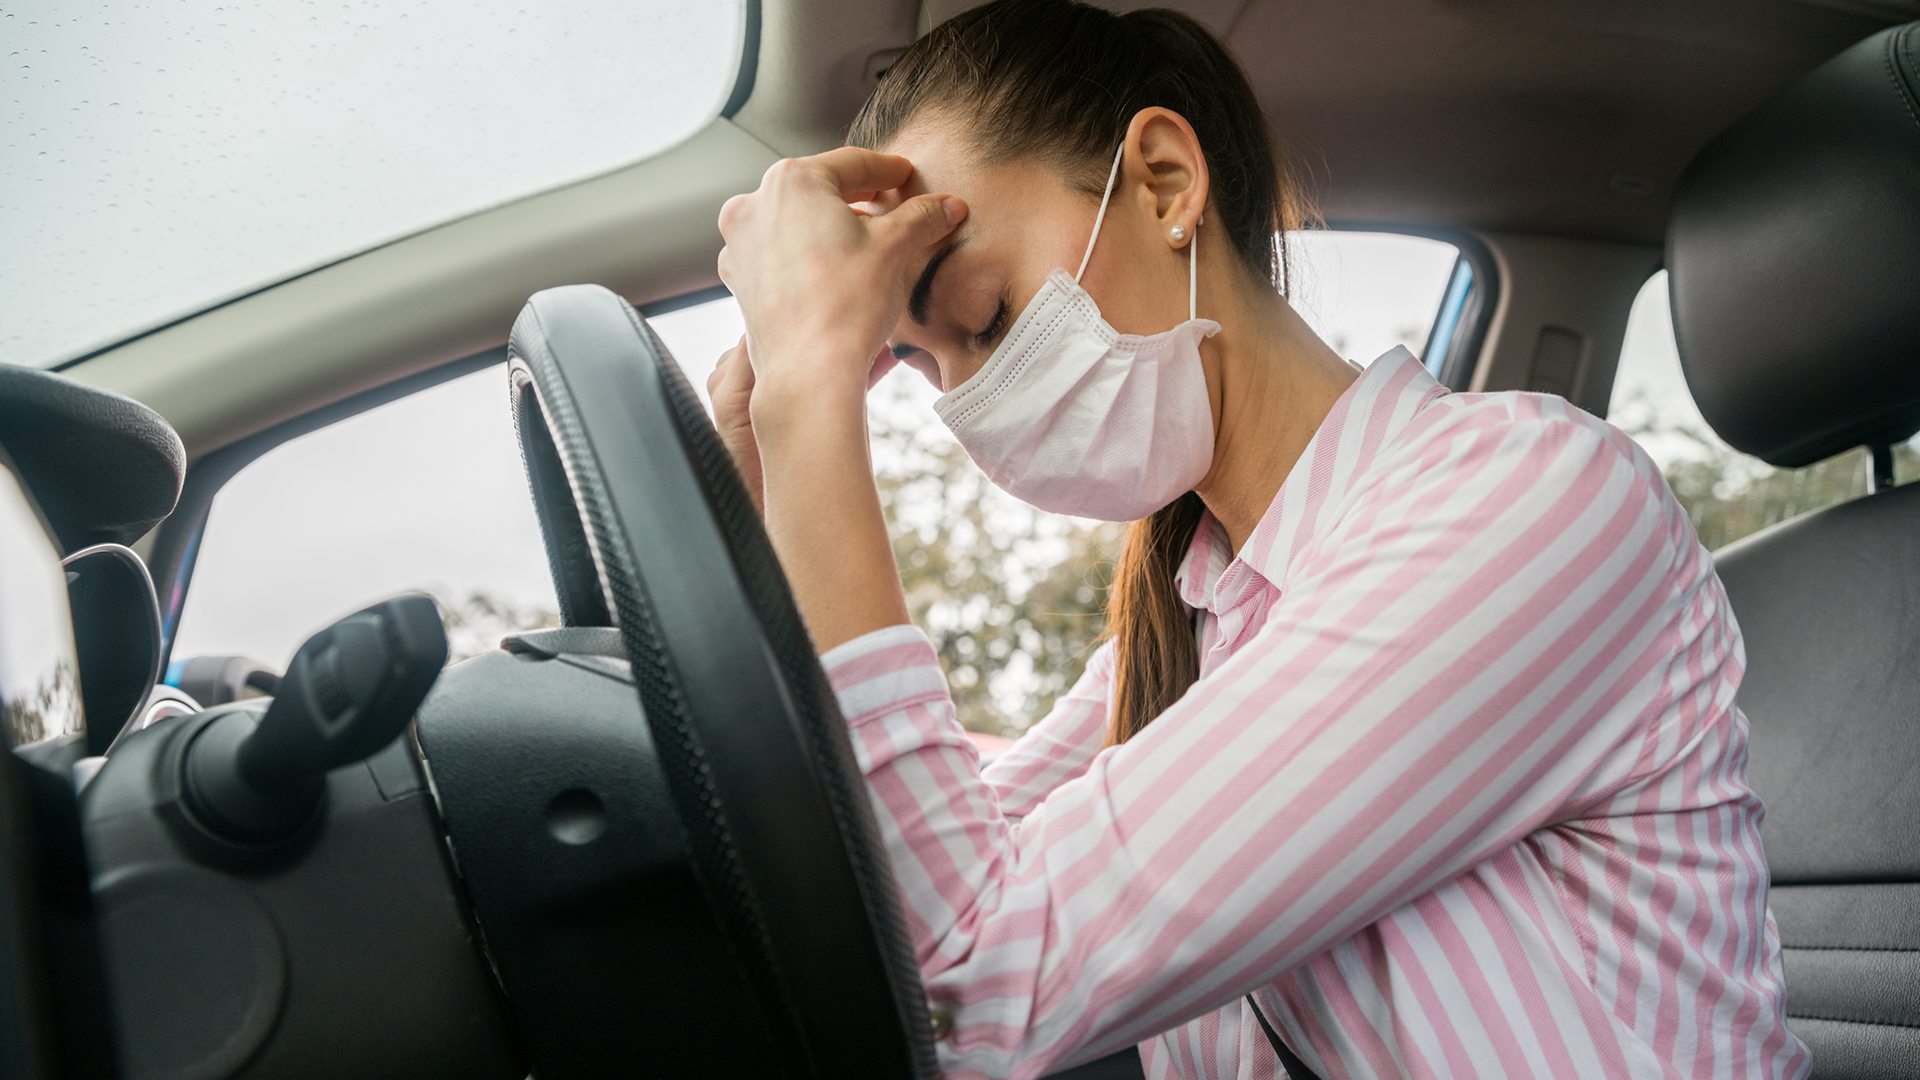 Holiday travel season is just around the corner, which means millions of people will experience motion sickness in a car, train, or plane. How can we manage this common discomfort to make the journey just as fun as the destination? Dr. Jason Fishel, MD, answers our biggest questions about motion sickness management.